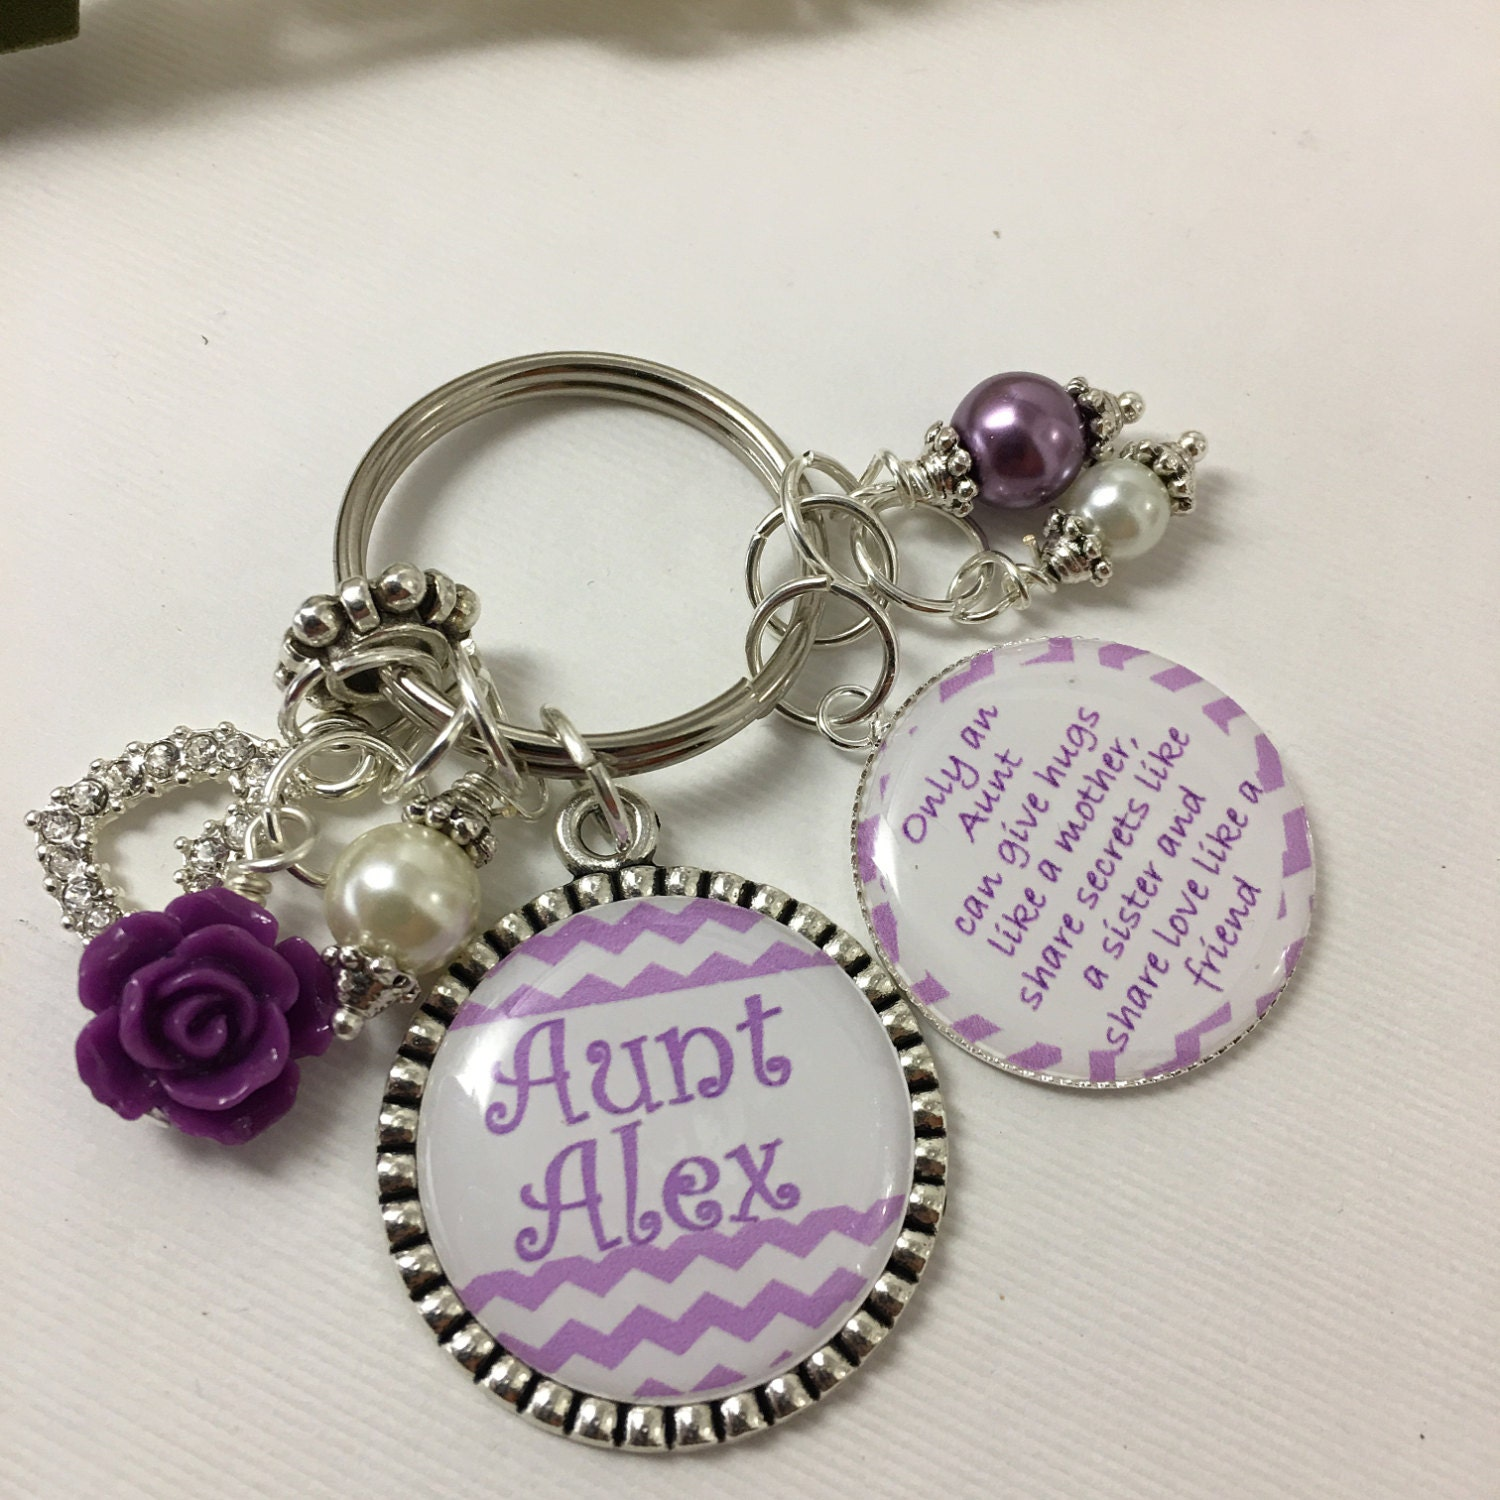 Wedding Gift For Aunt: Aunt Gifts Auntie Keychain Aunt Wedding Gift Aunt Bling